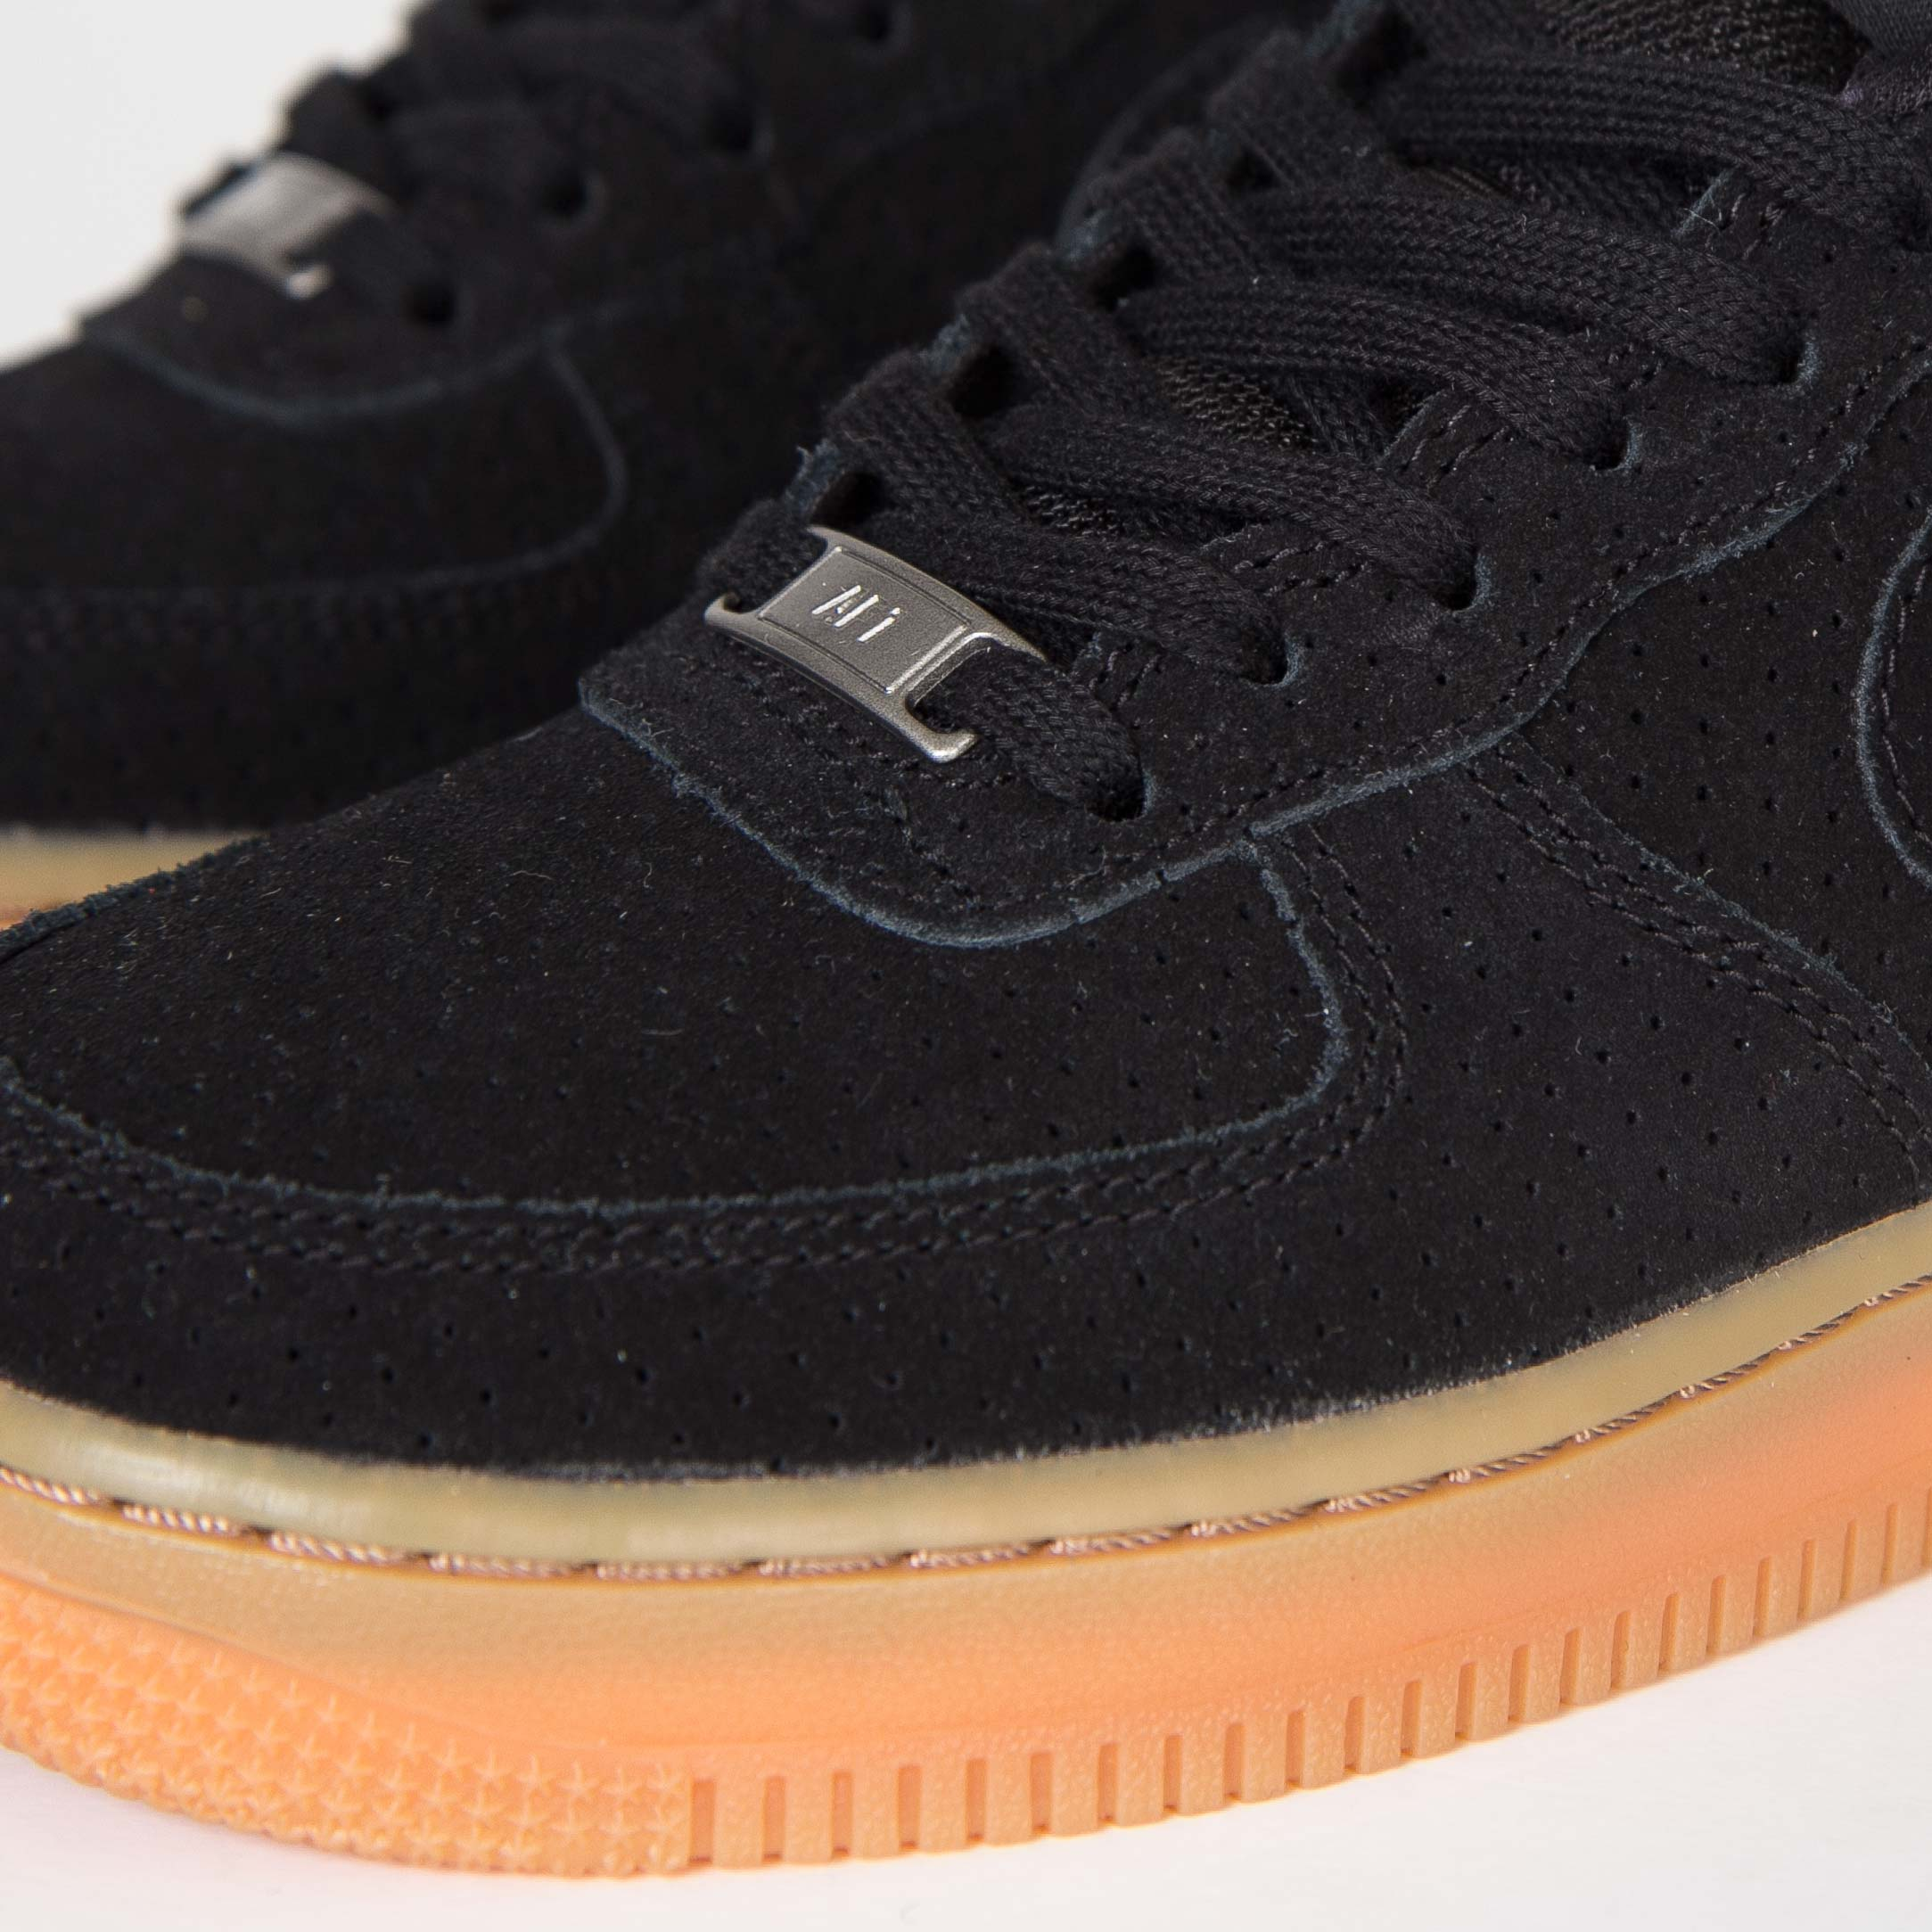 Nike Wmns Air Force 1 07 Suede 749263 002 Sneakersnstuff